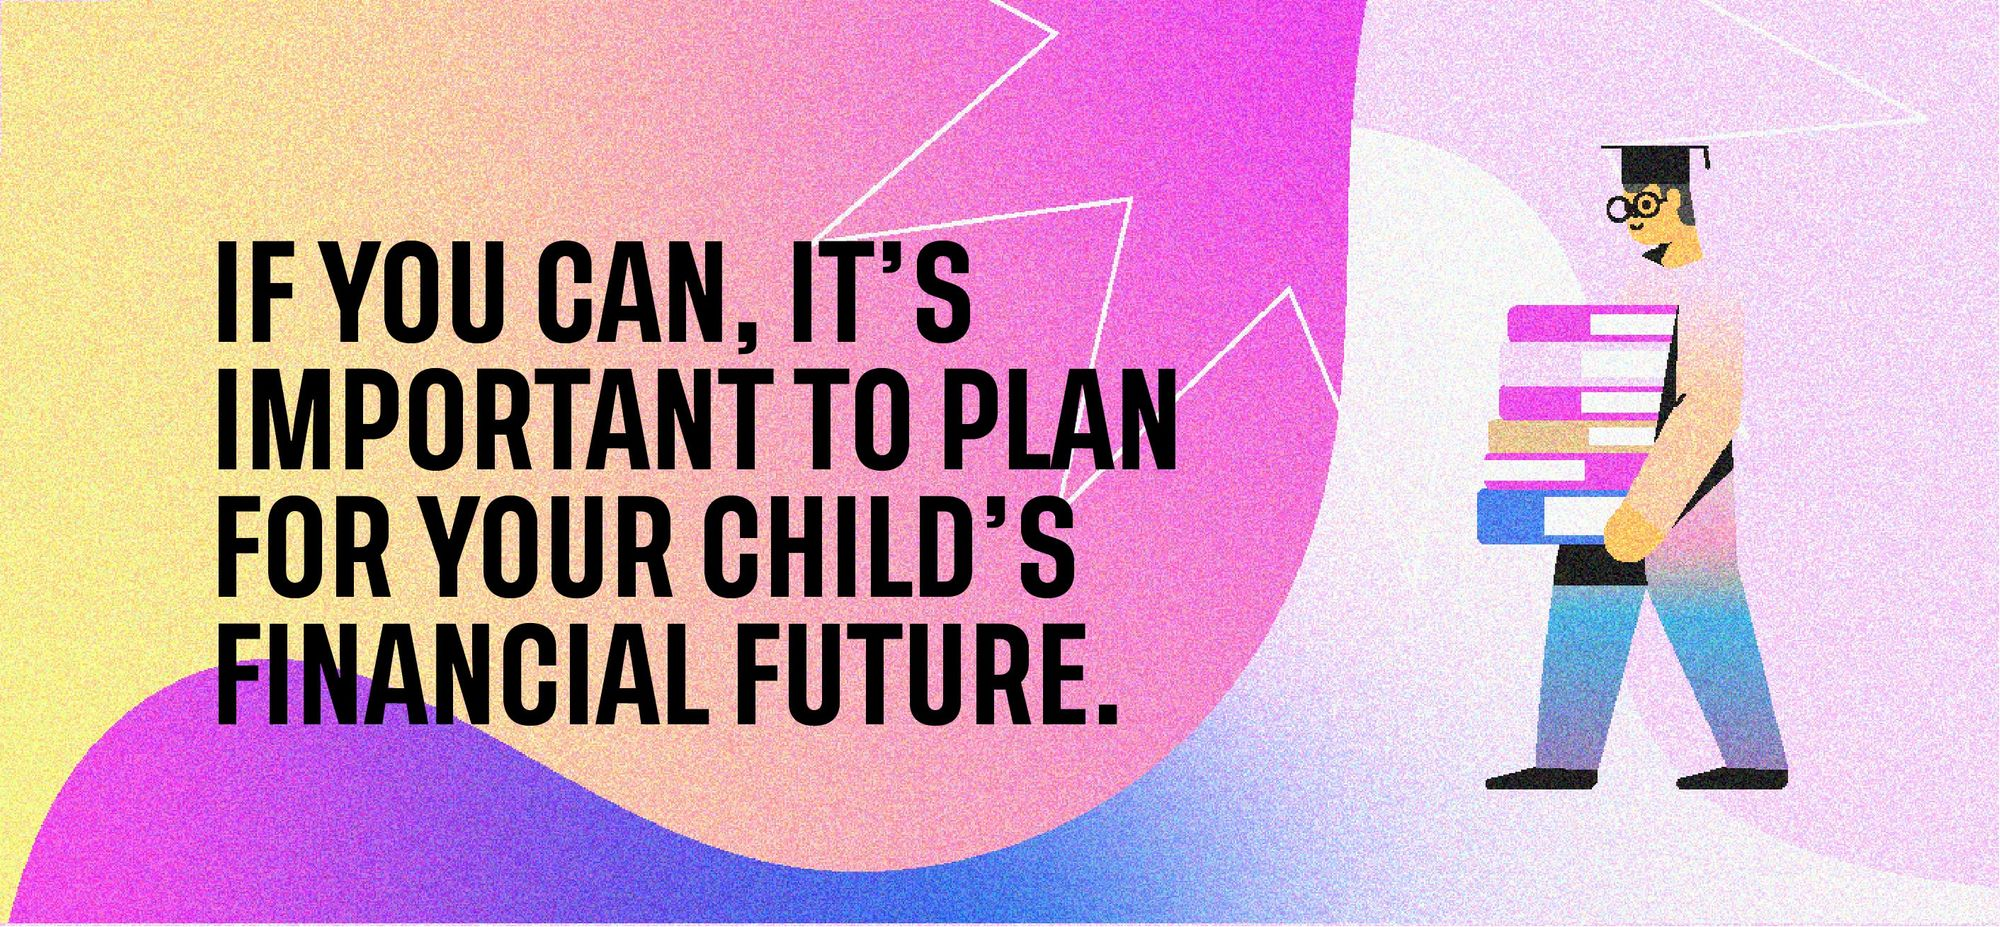 If you can, it's important to plan for your child's financial future.